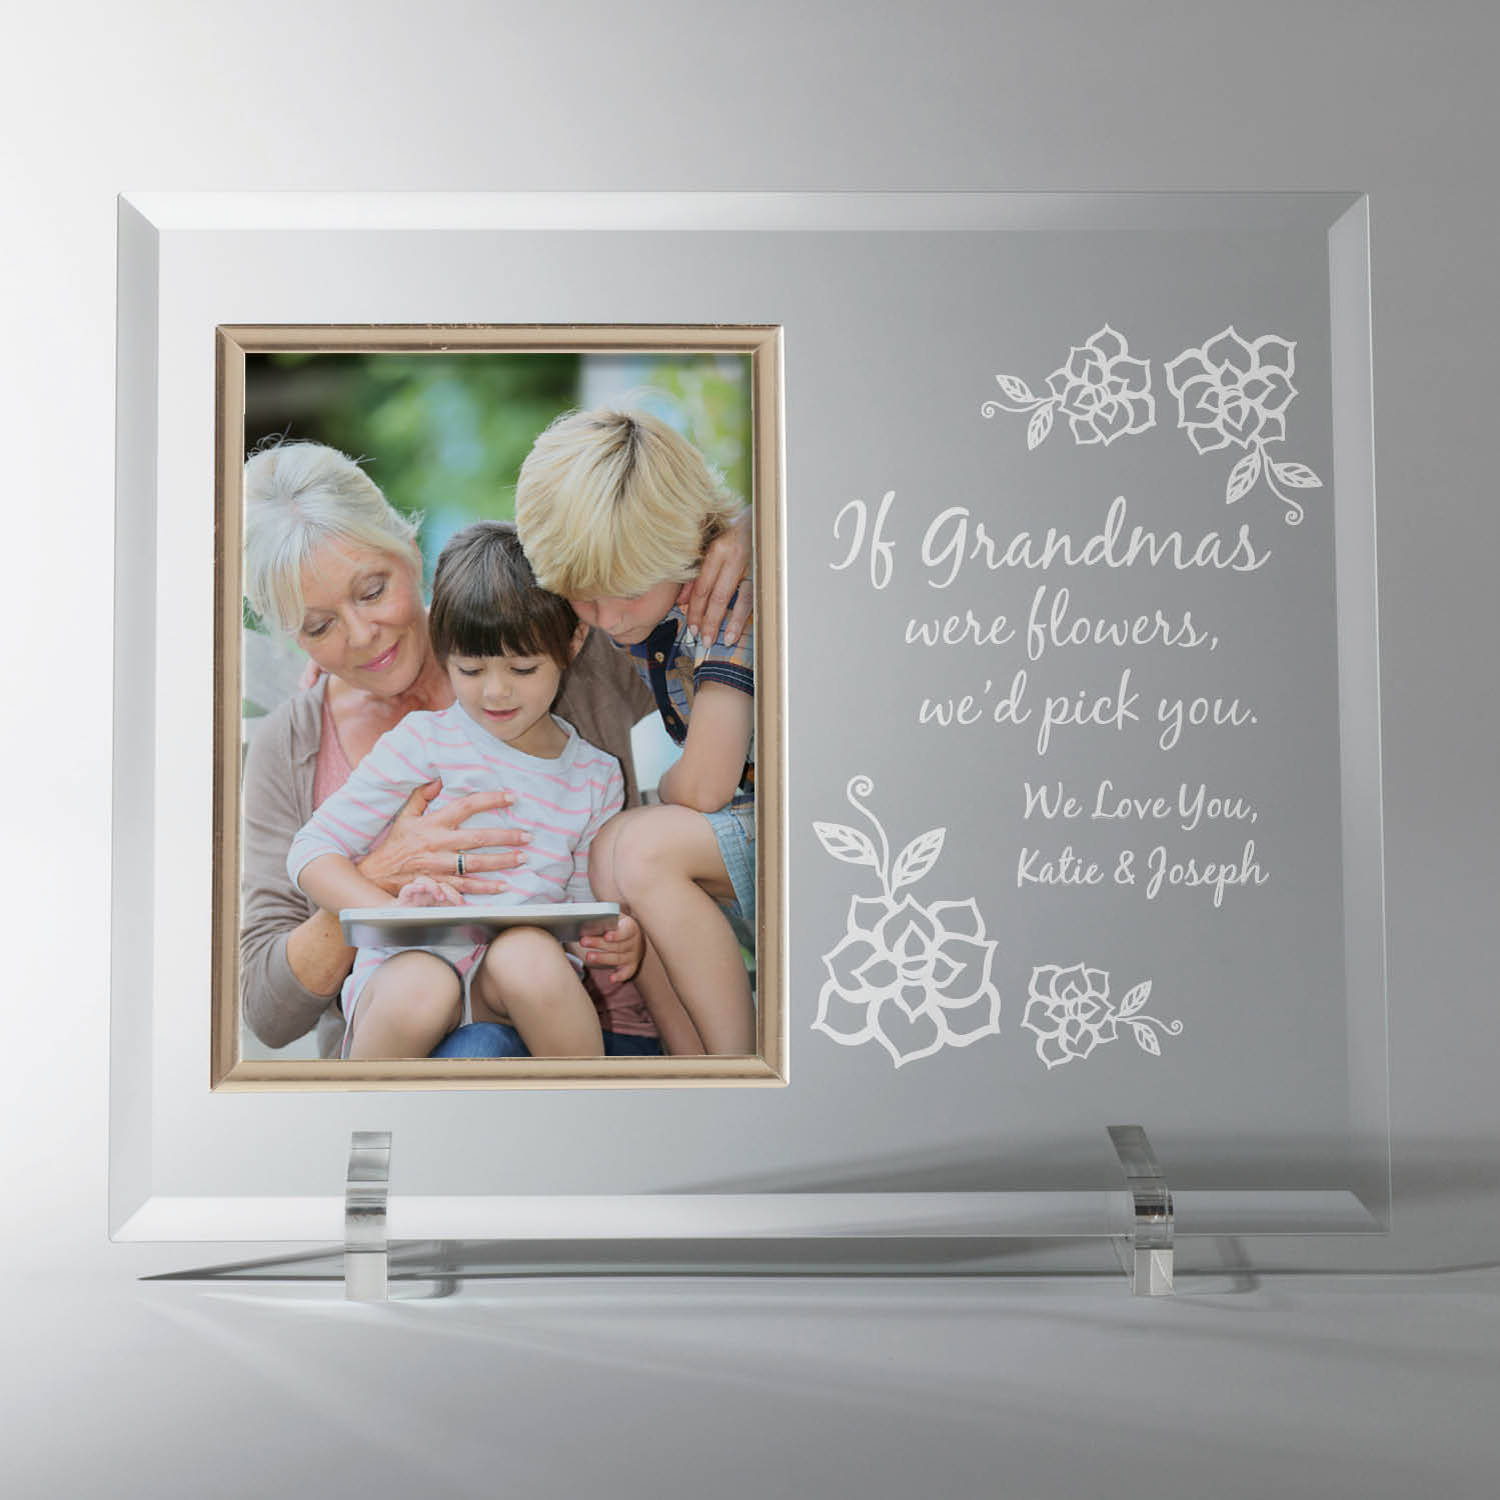 Grandmother Gift Frame - If Grandmas Were Flowers Personalized Glass Frames, I or We